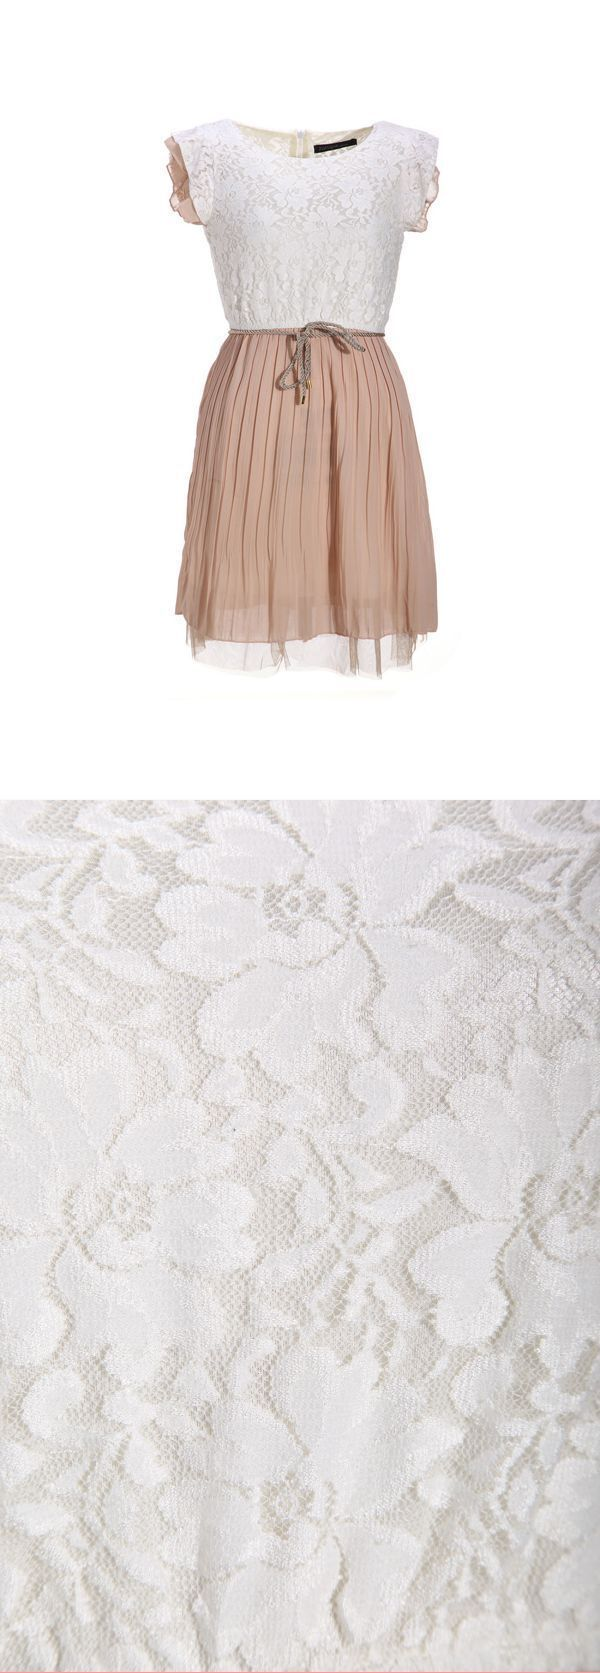 T Length Chiffon Dresses Women 8217 S Beige Lace Dress Sleeveless Pleated Vest Waist Mini For Mother Of The Bride Chi